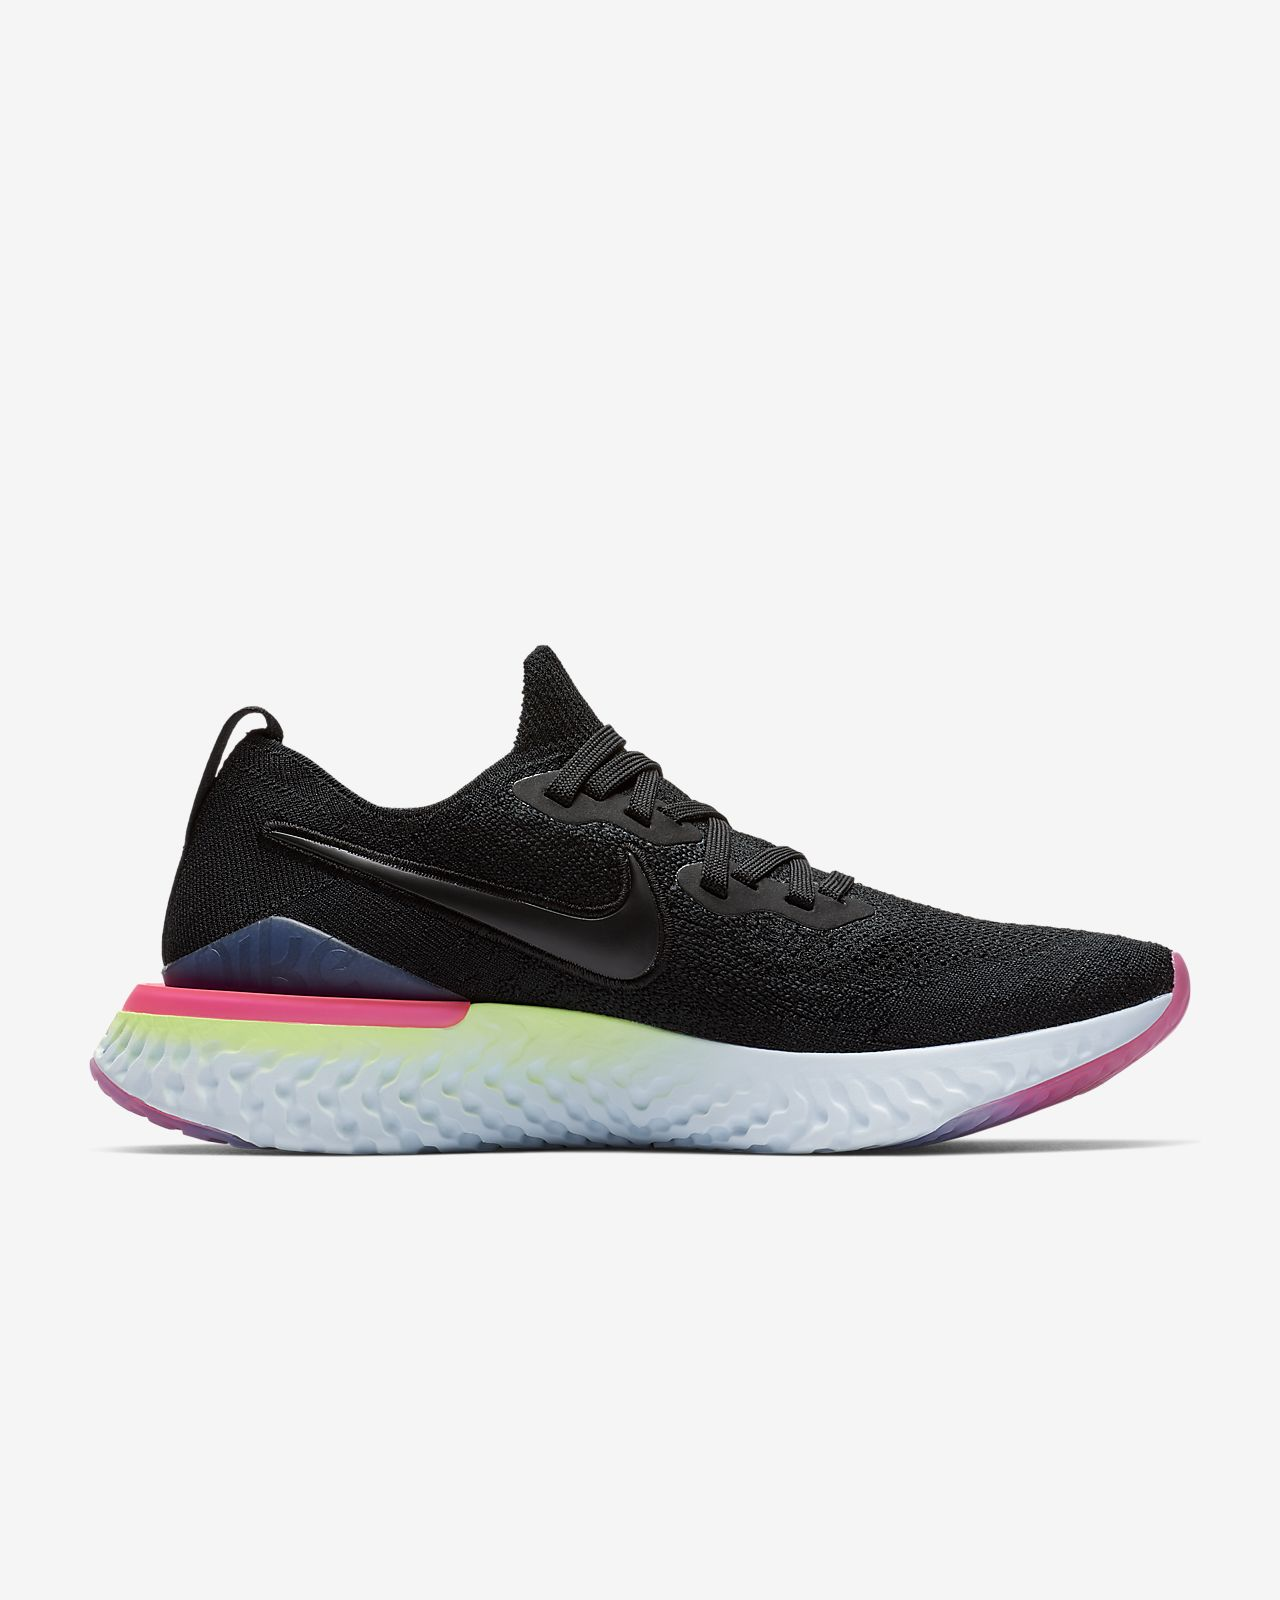 uk availability a0fbc c2032 ... Nike Epic React Flyknit 2 Women s Running Shoe